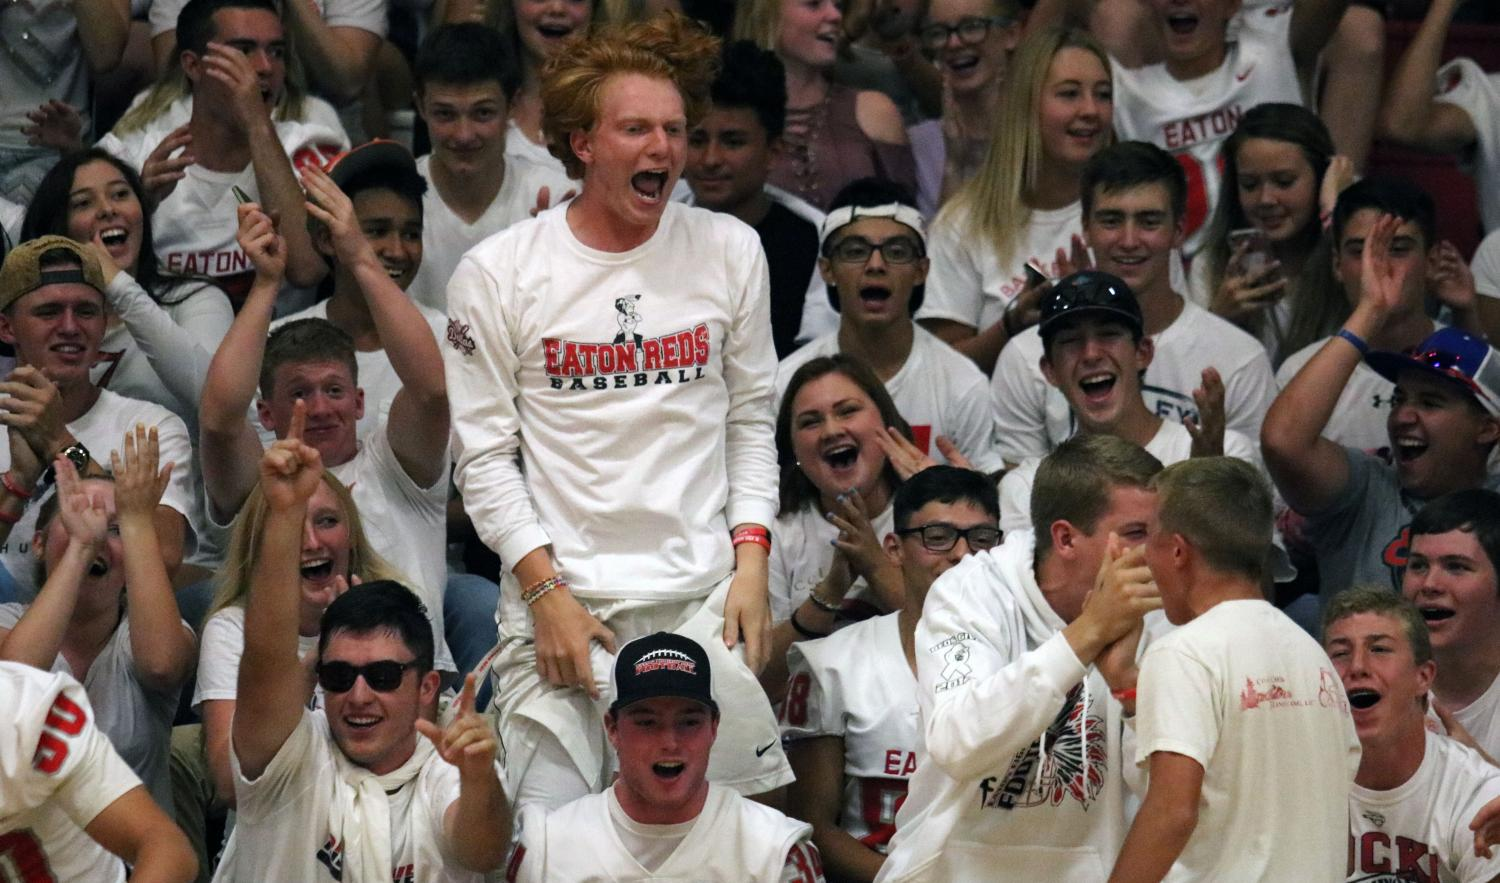 With all students dressed for a white-out, CJ Baskowski (18) jumps out of his seat to celebrate a Ma